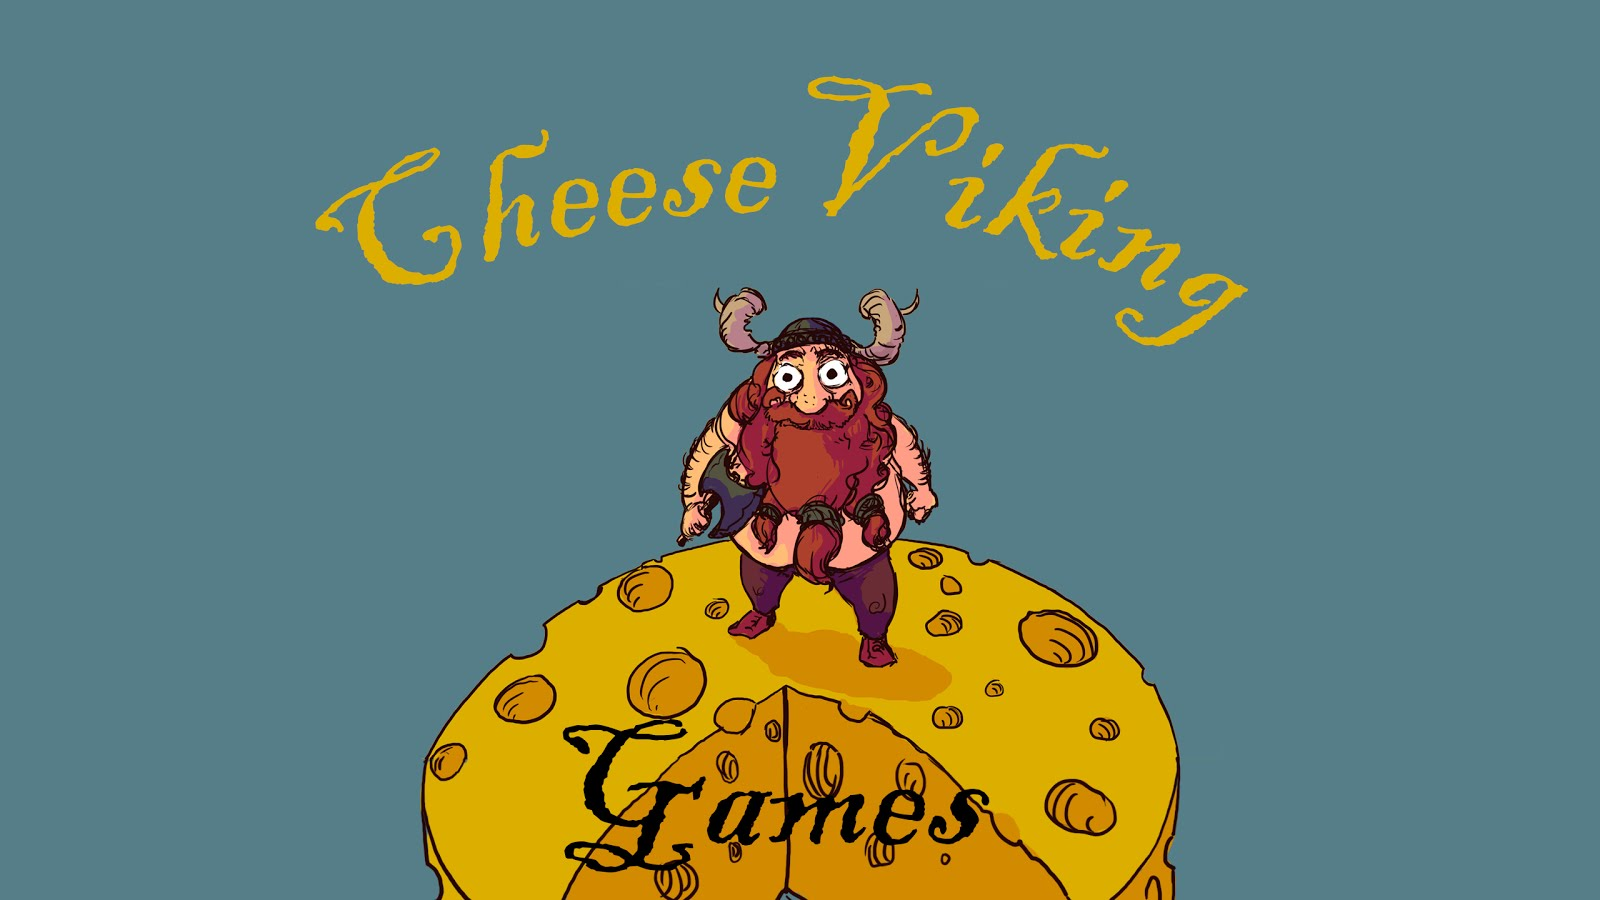 CheeseViking Games: 2018